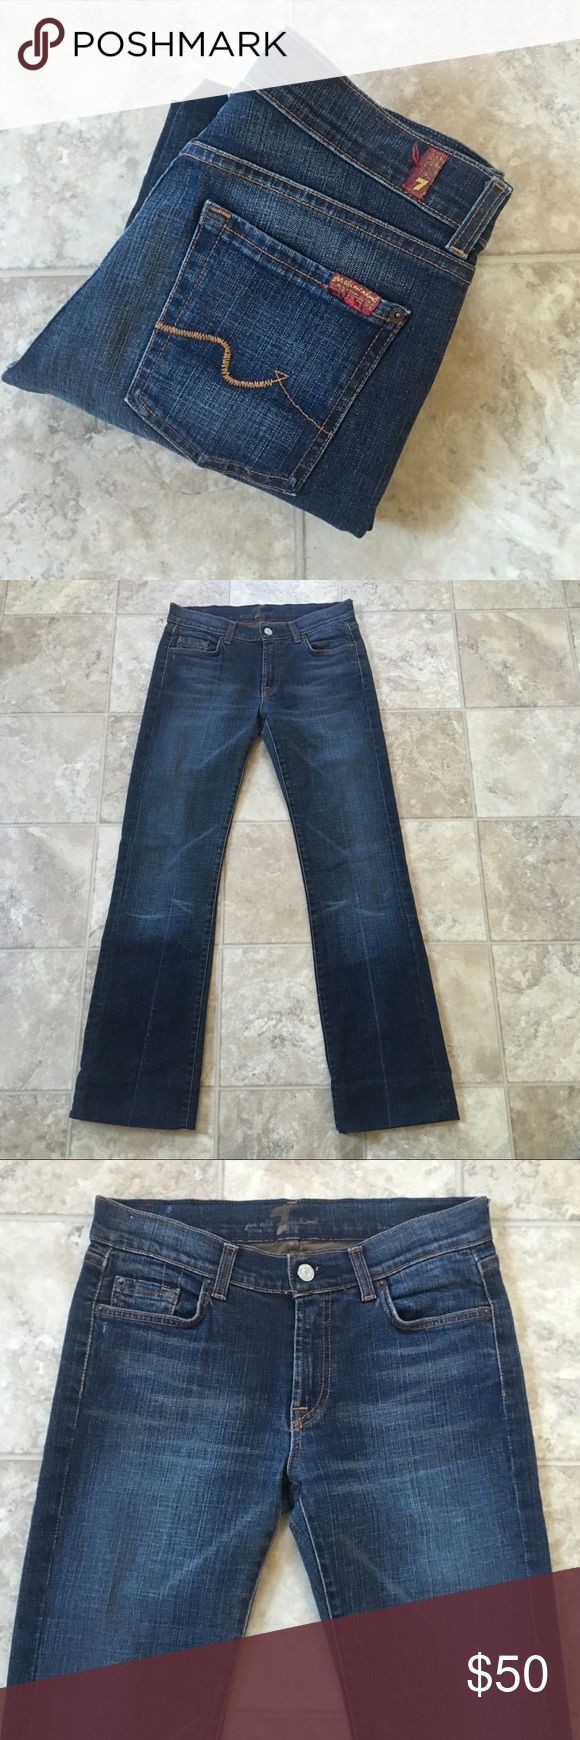 "7 For All Mankind Mens Bootcut Jeans Size 29 X 30 7 For All Mankind Mens Bootcut Jeans Size 29 X 30 Inseam 30 Hemmed Jeans Across the waist 14.5"" W 29 SAME DAY SHIPPING! SMOKE FREE HOME! MINT CONDITION  ALL OFFERS CONSIDERED 7 For All Mankind Jeans Bootcut #mensjeansbootcut"